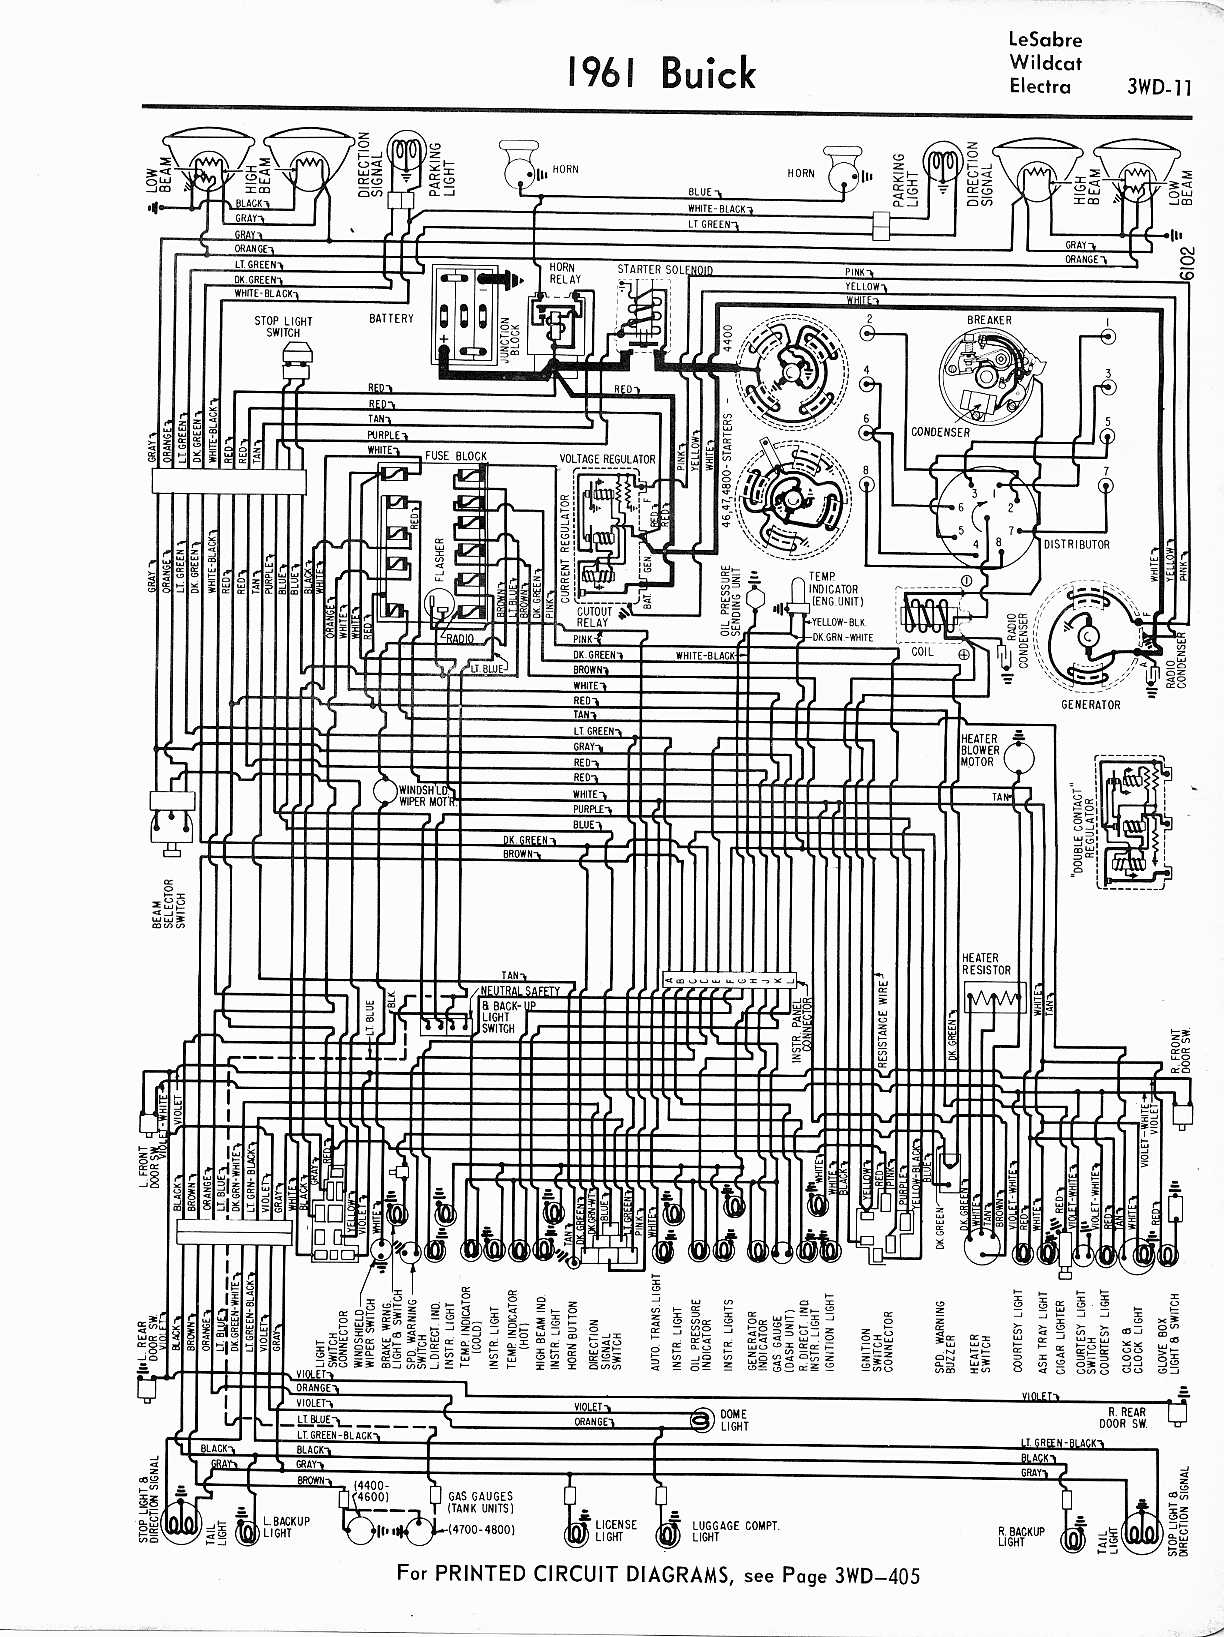 MWireBuic65_3WD 011 buick wiring diagrams 1957 1965 Buick LeSabre Engine Diagram at webbmarketing.co